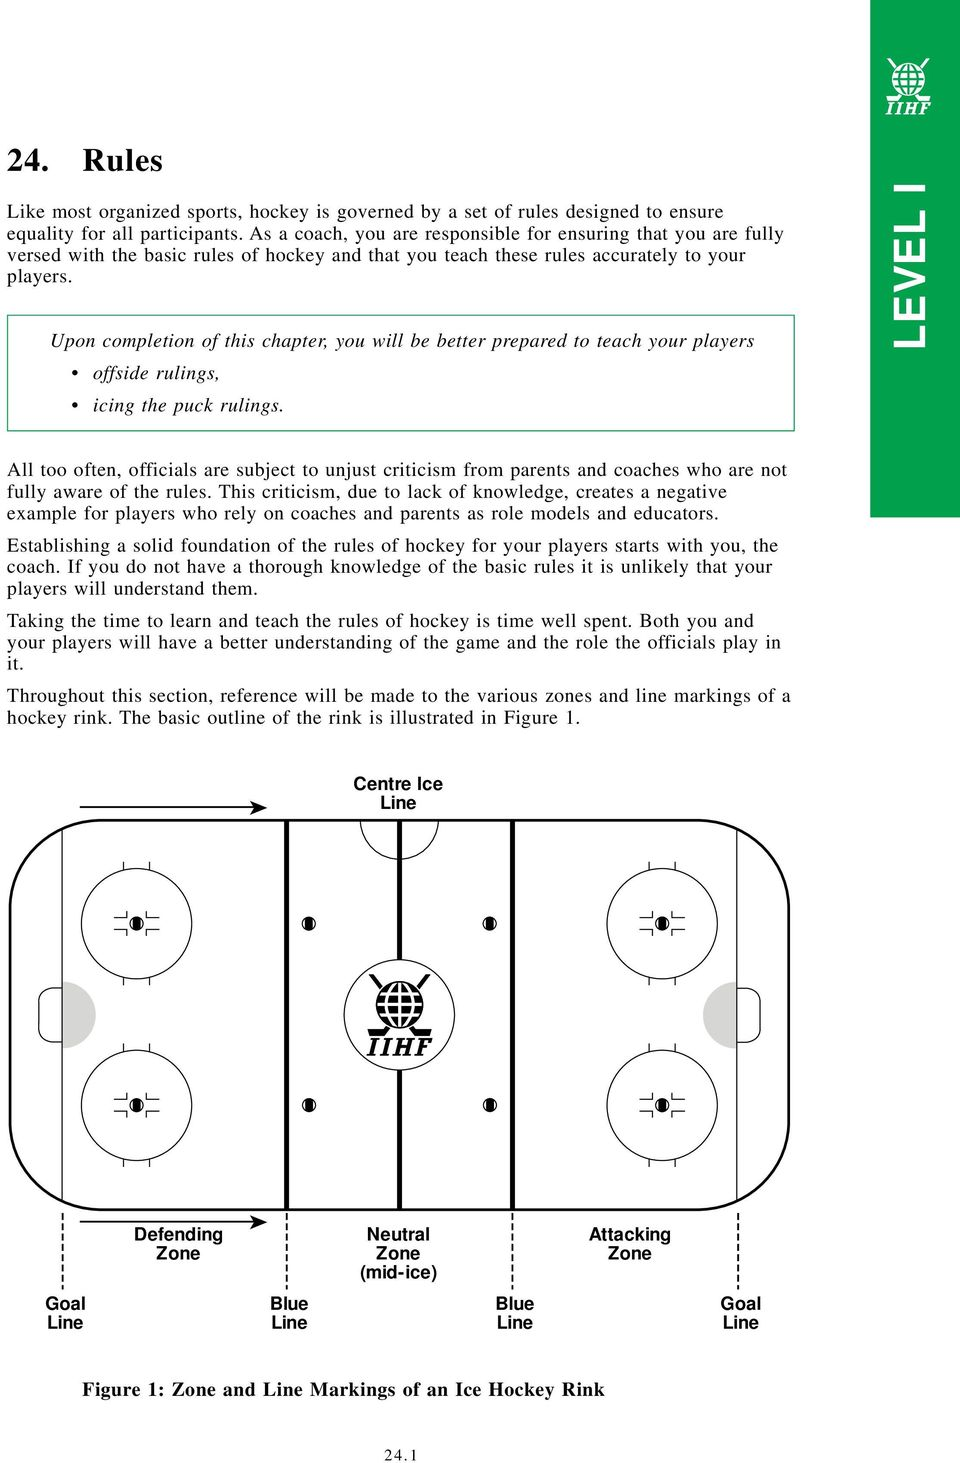 Upon completion of this chapter, you will be better prepared to teach your players offside rulings, icing the puck rulings.